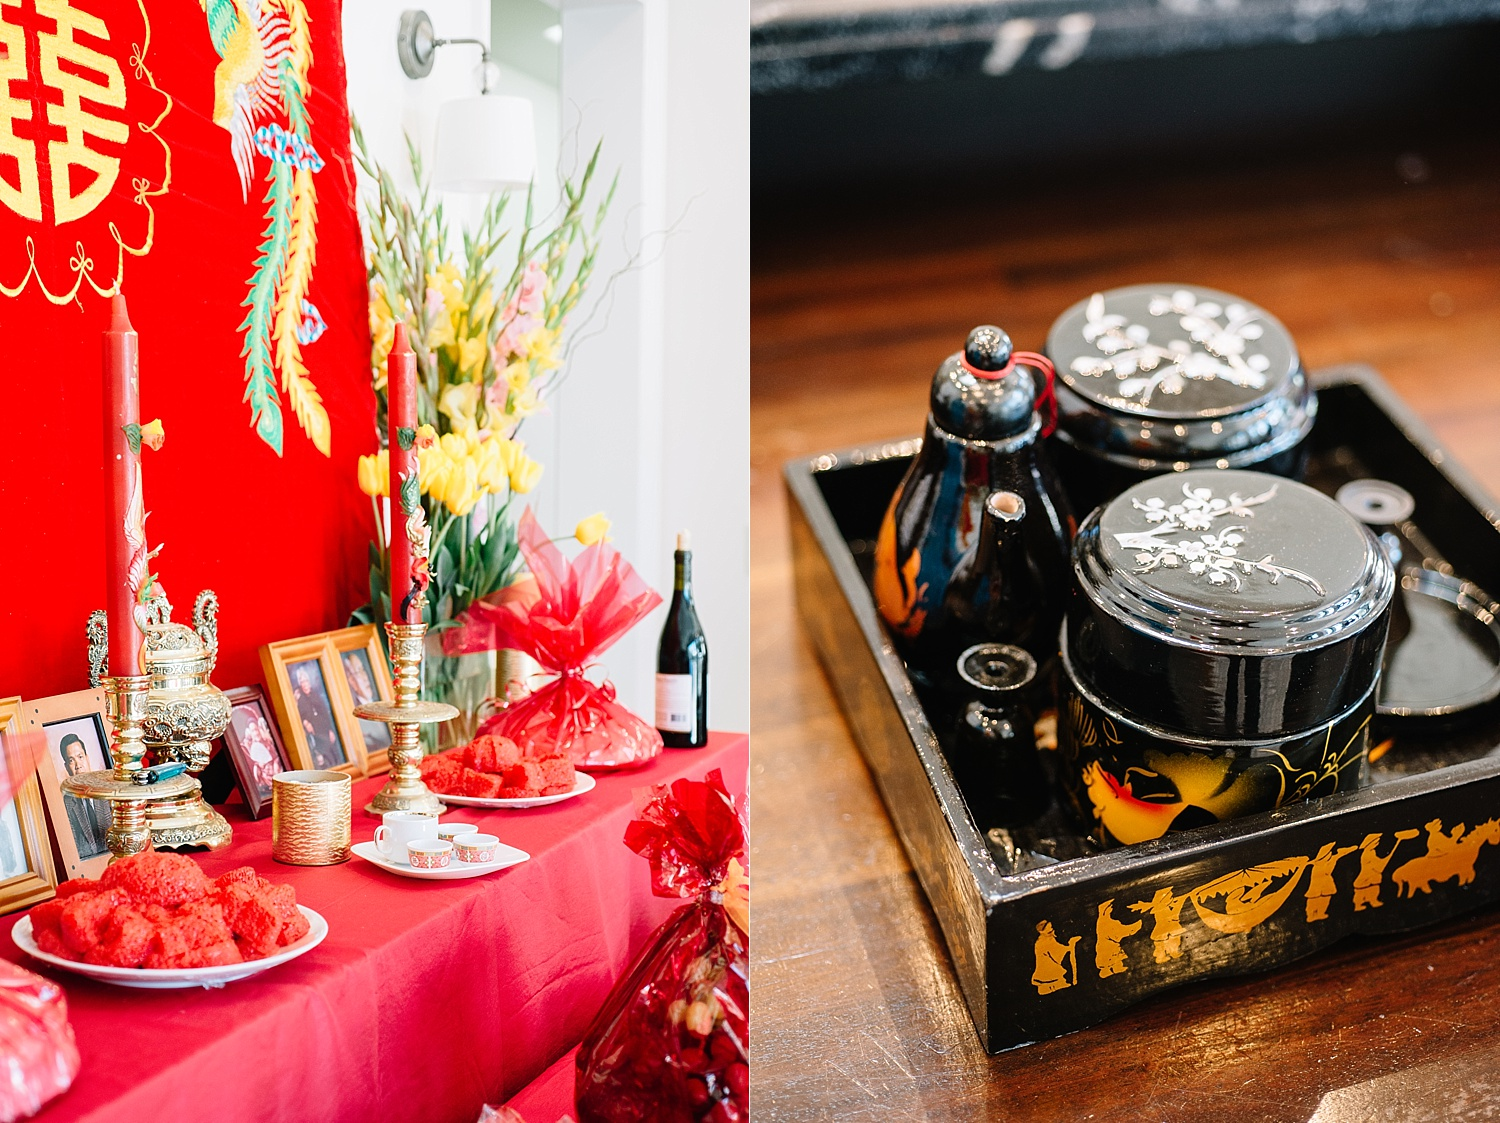 jennifer-jayn-photography-los-altos-wedding-vietnamese-tea-ceremony_0006.jpg